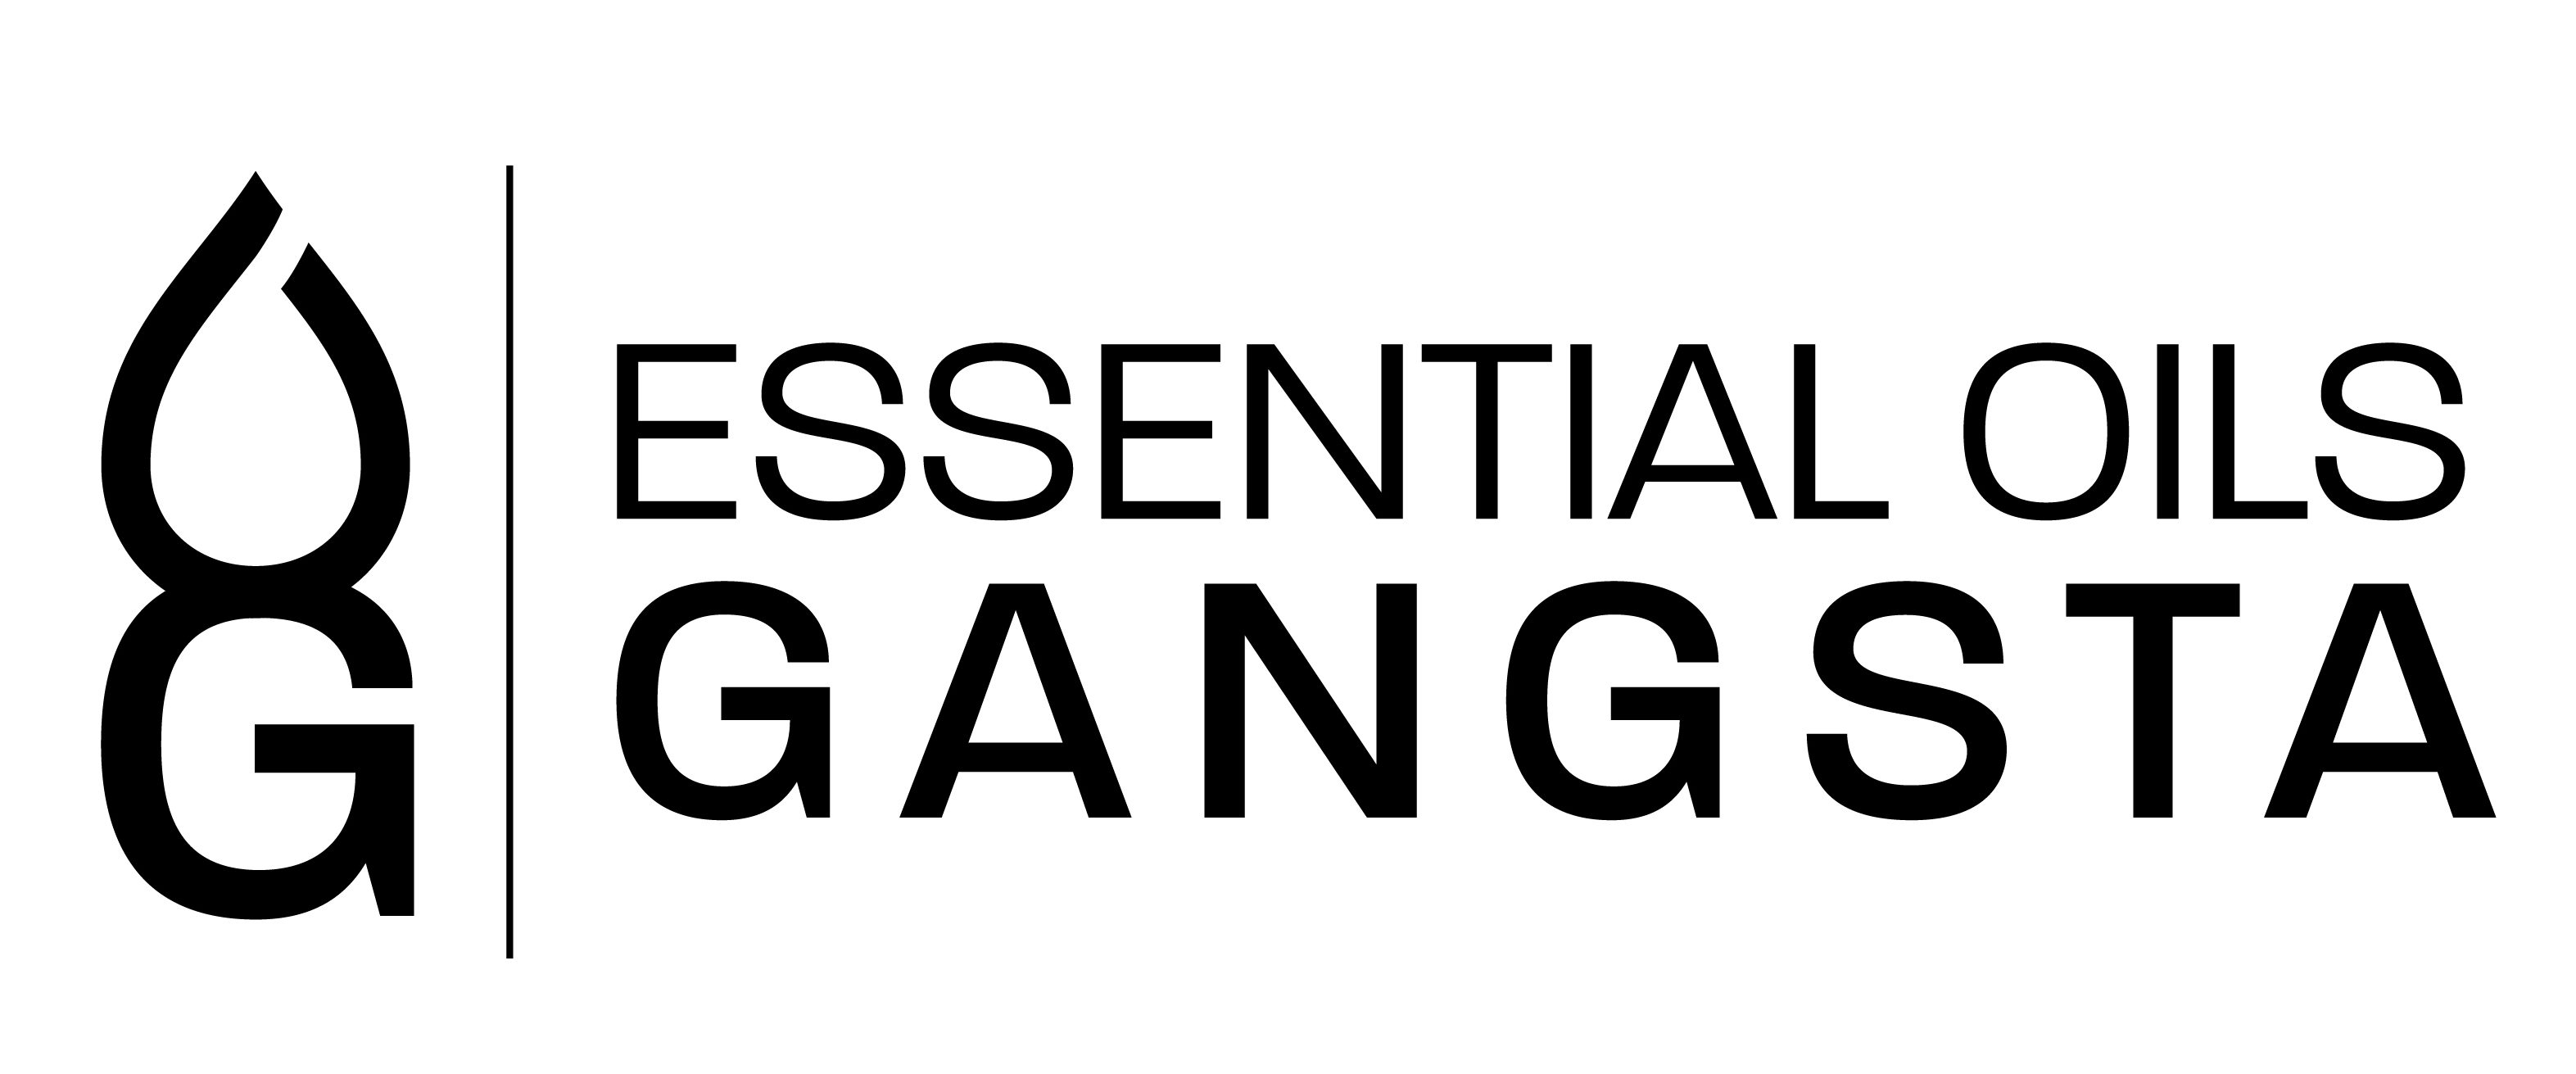 Essential Oils Gangsta